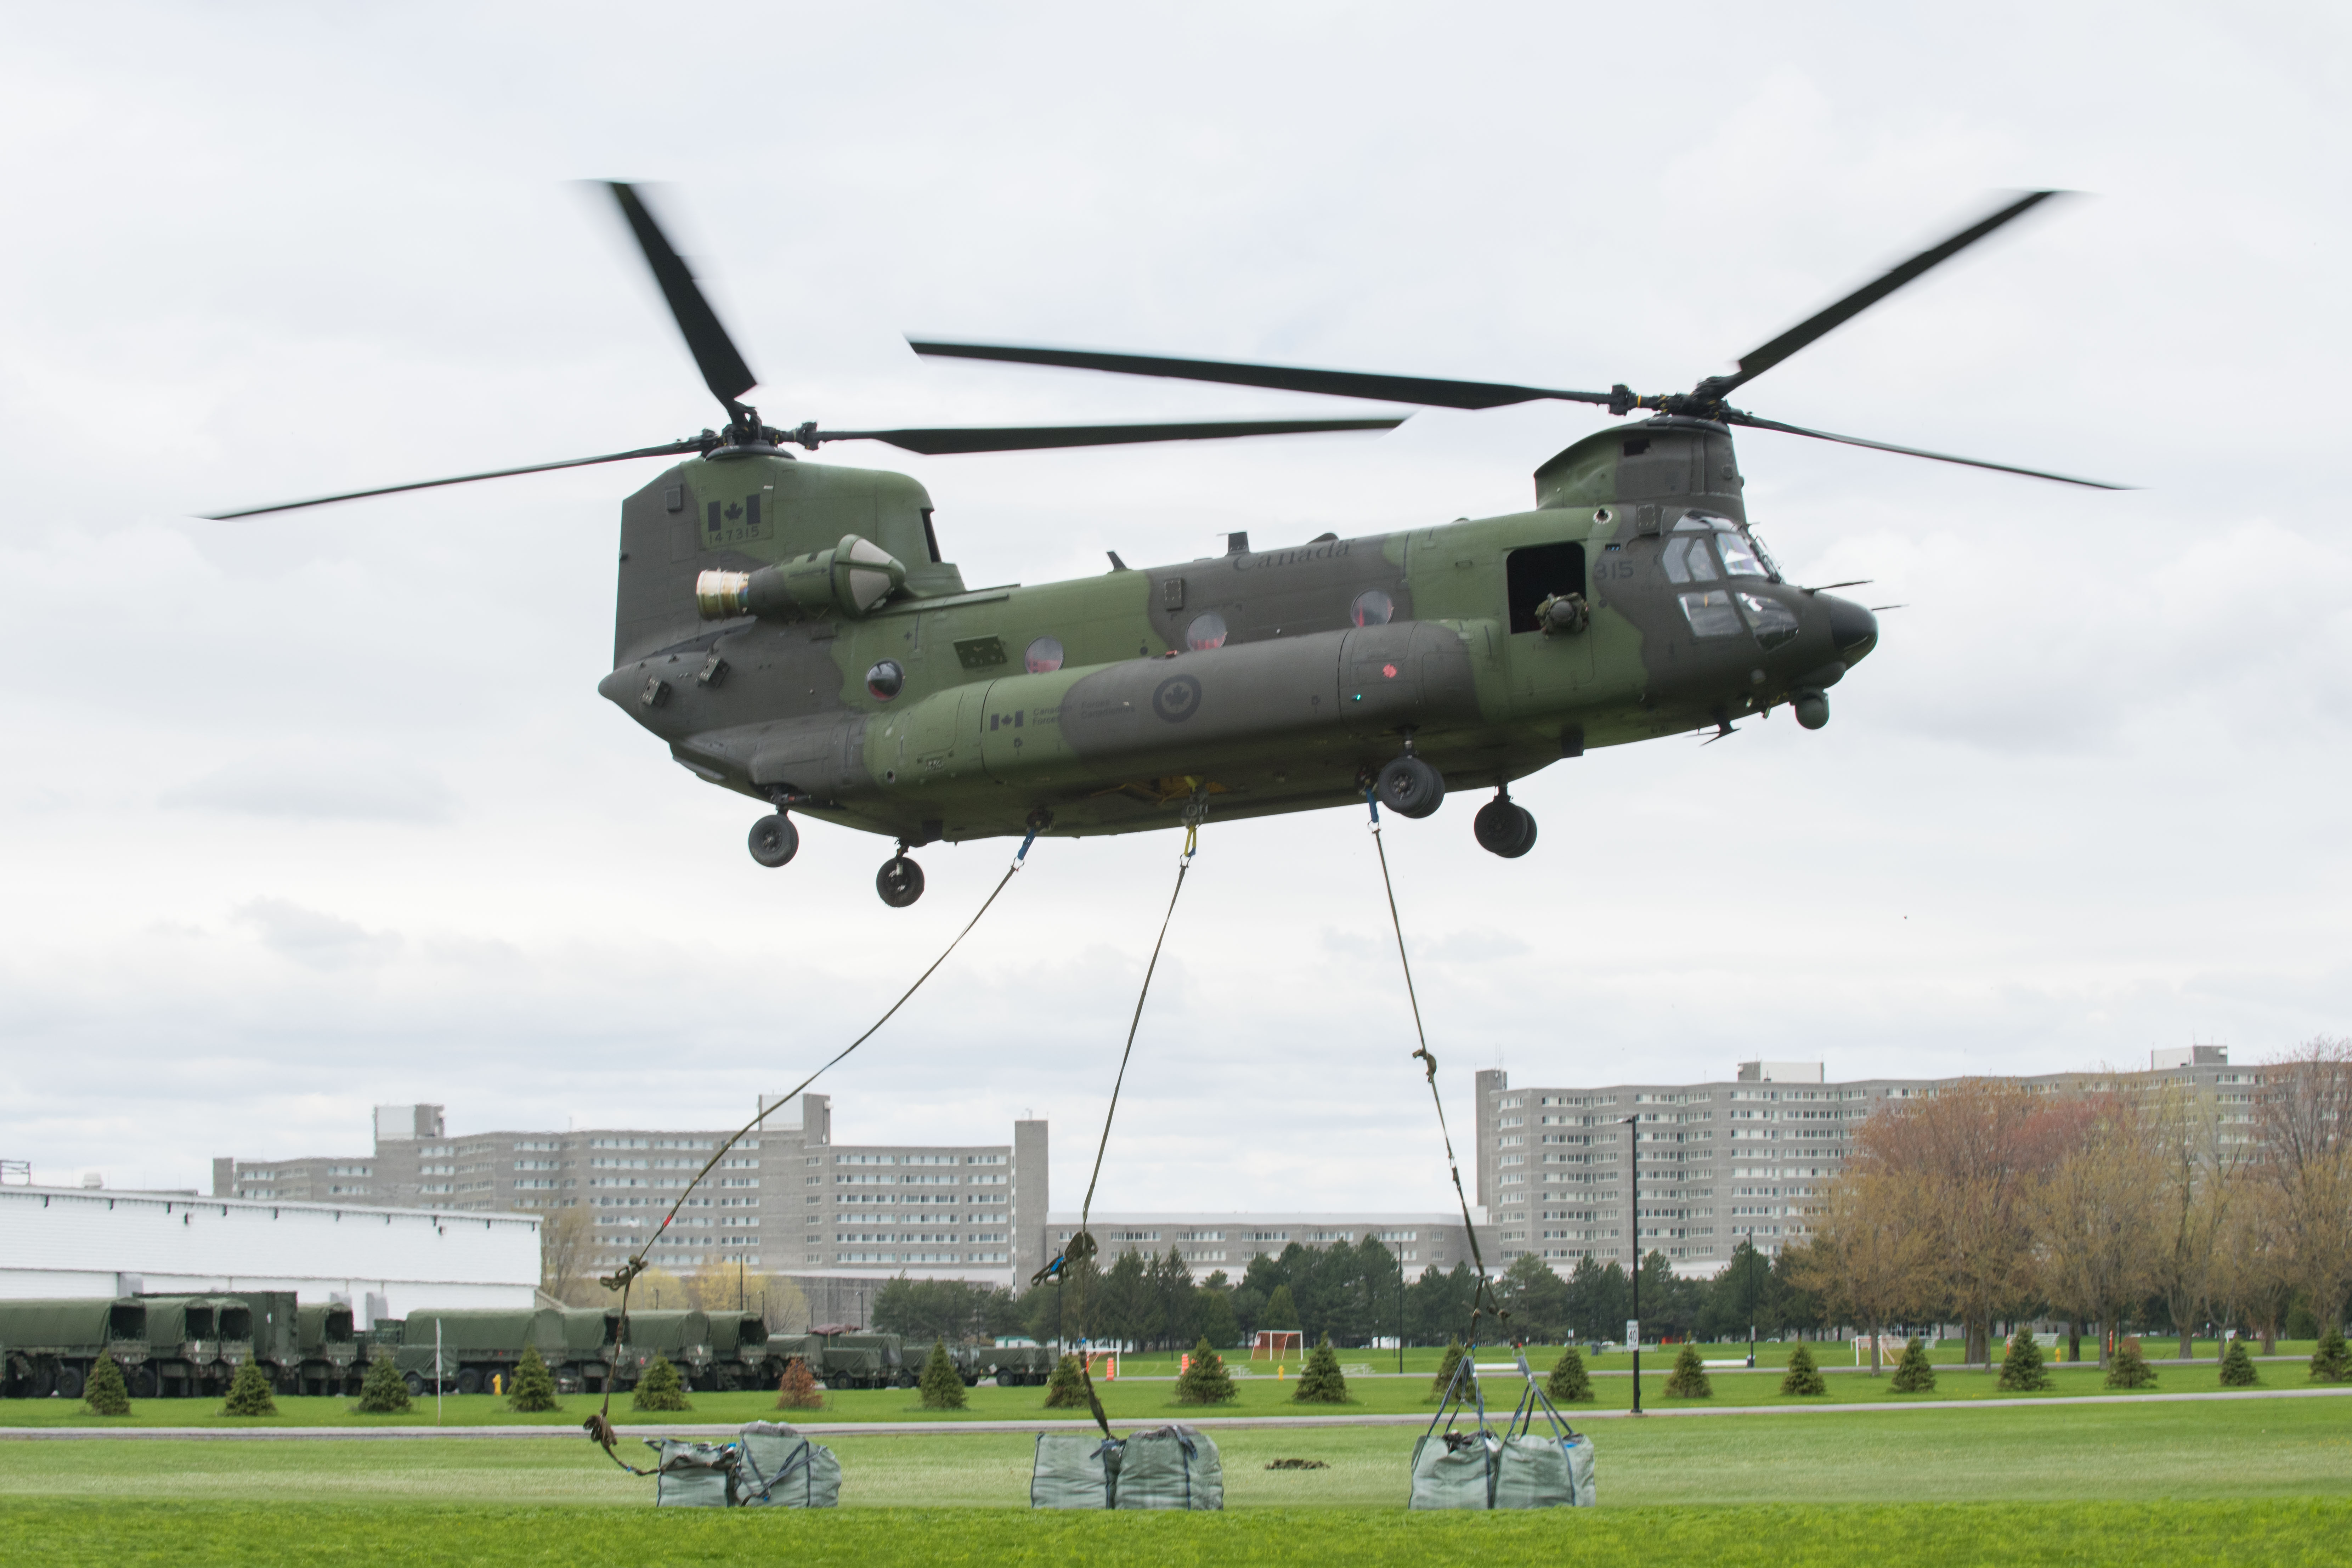 A CH-147 Chinook from 430 Tactical Helicopter Squadron prepares to distribute sandbags in flooded regions during Operation LENTUS on May 10, 2017. (Photo: Ordinary Seaman Anne-Marie Brisson, Imaging services St-Jean/Montreal)`